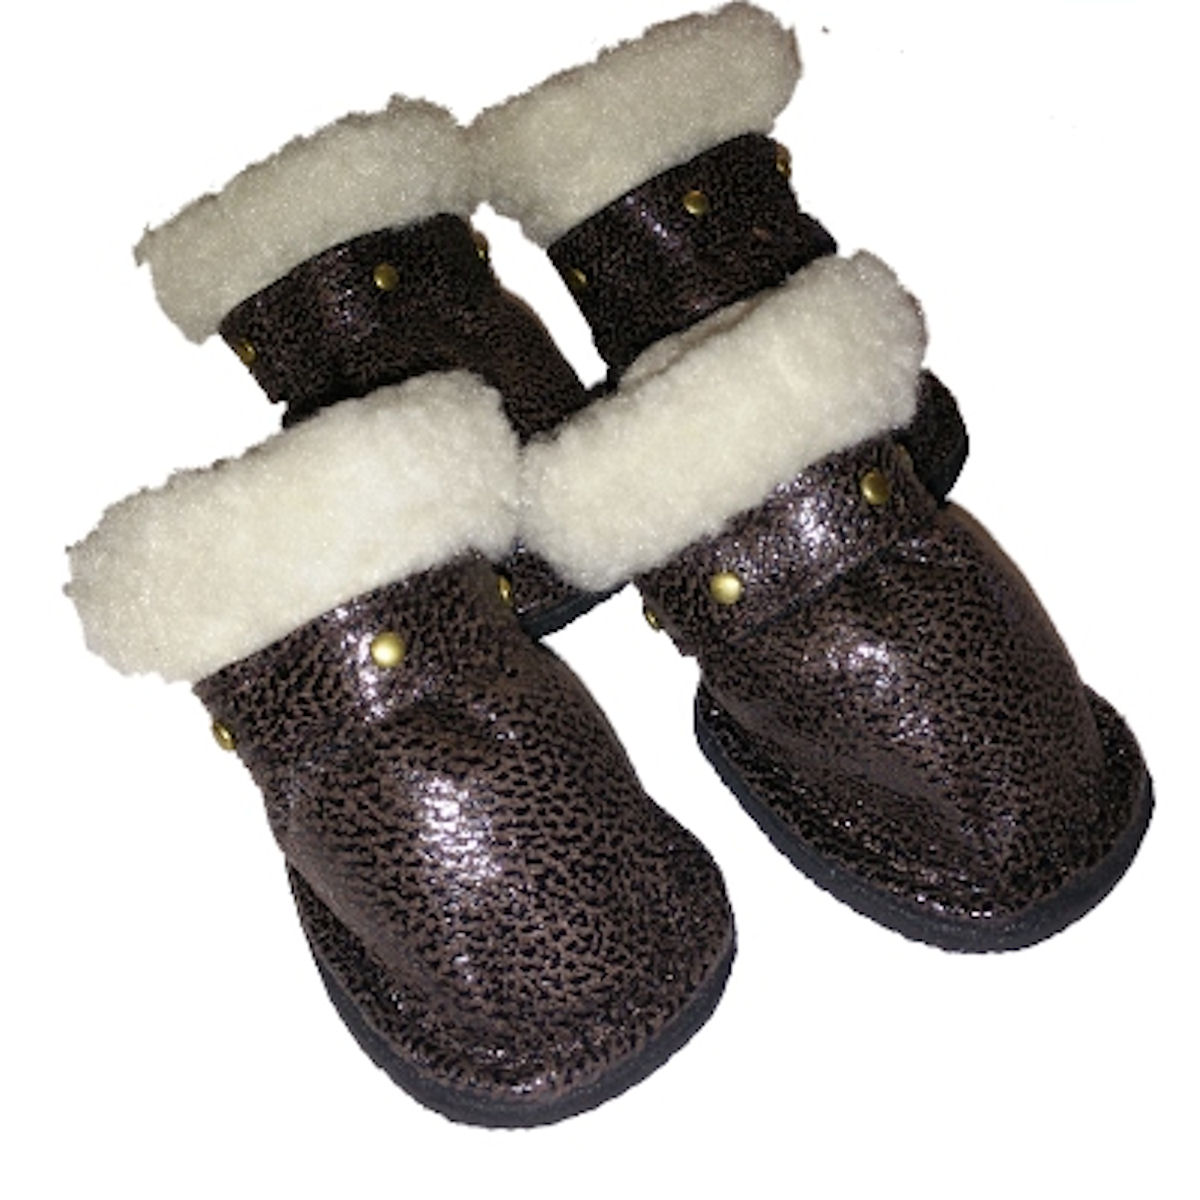 SimplyDog Brown Stud Faux Leather Dog Booties (S/M)